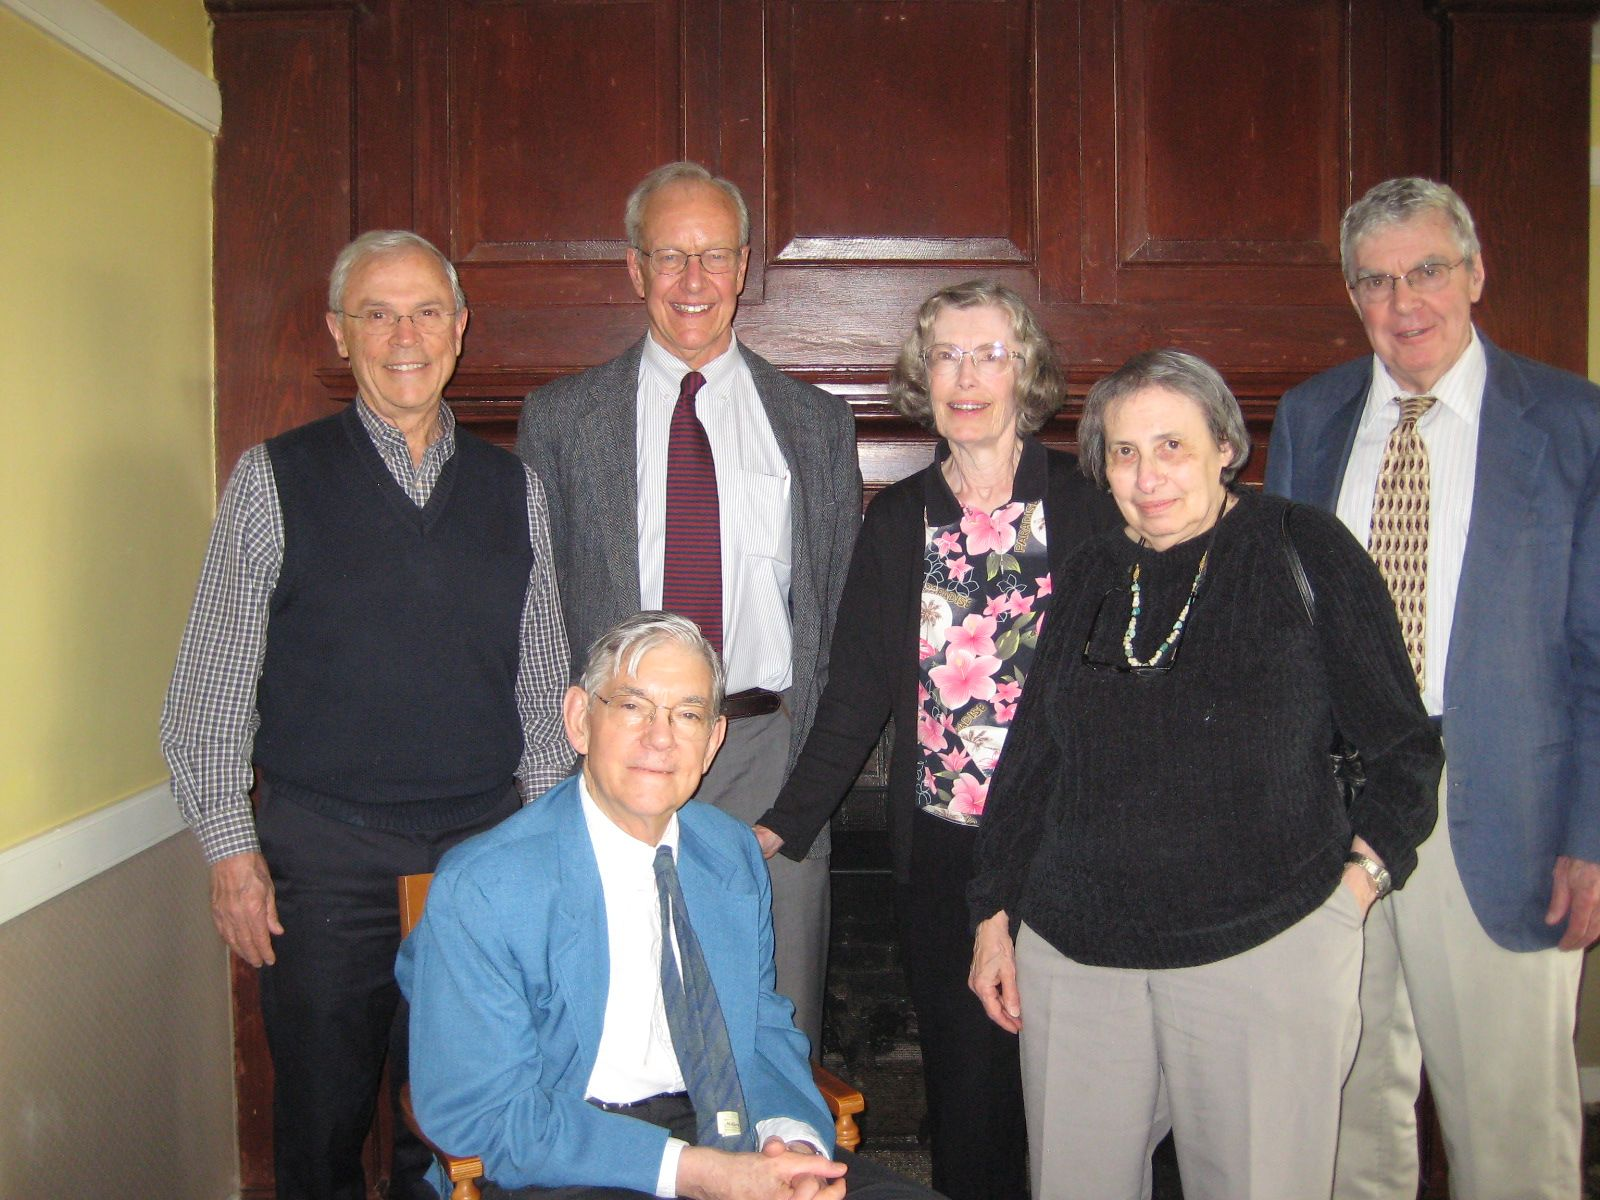 Members of the Alumni House had lunch in Portland, Maine with a few members of the Class of 1955 and their wives: Seated: John Hurd, Standing: Sam Parkhill, Jeff Eaton, Barbara MacMahon, Judi Hurd and Hugh MacMahon.